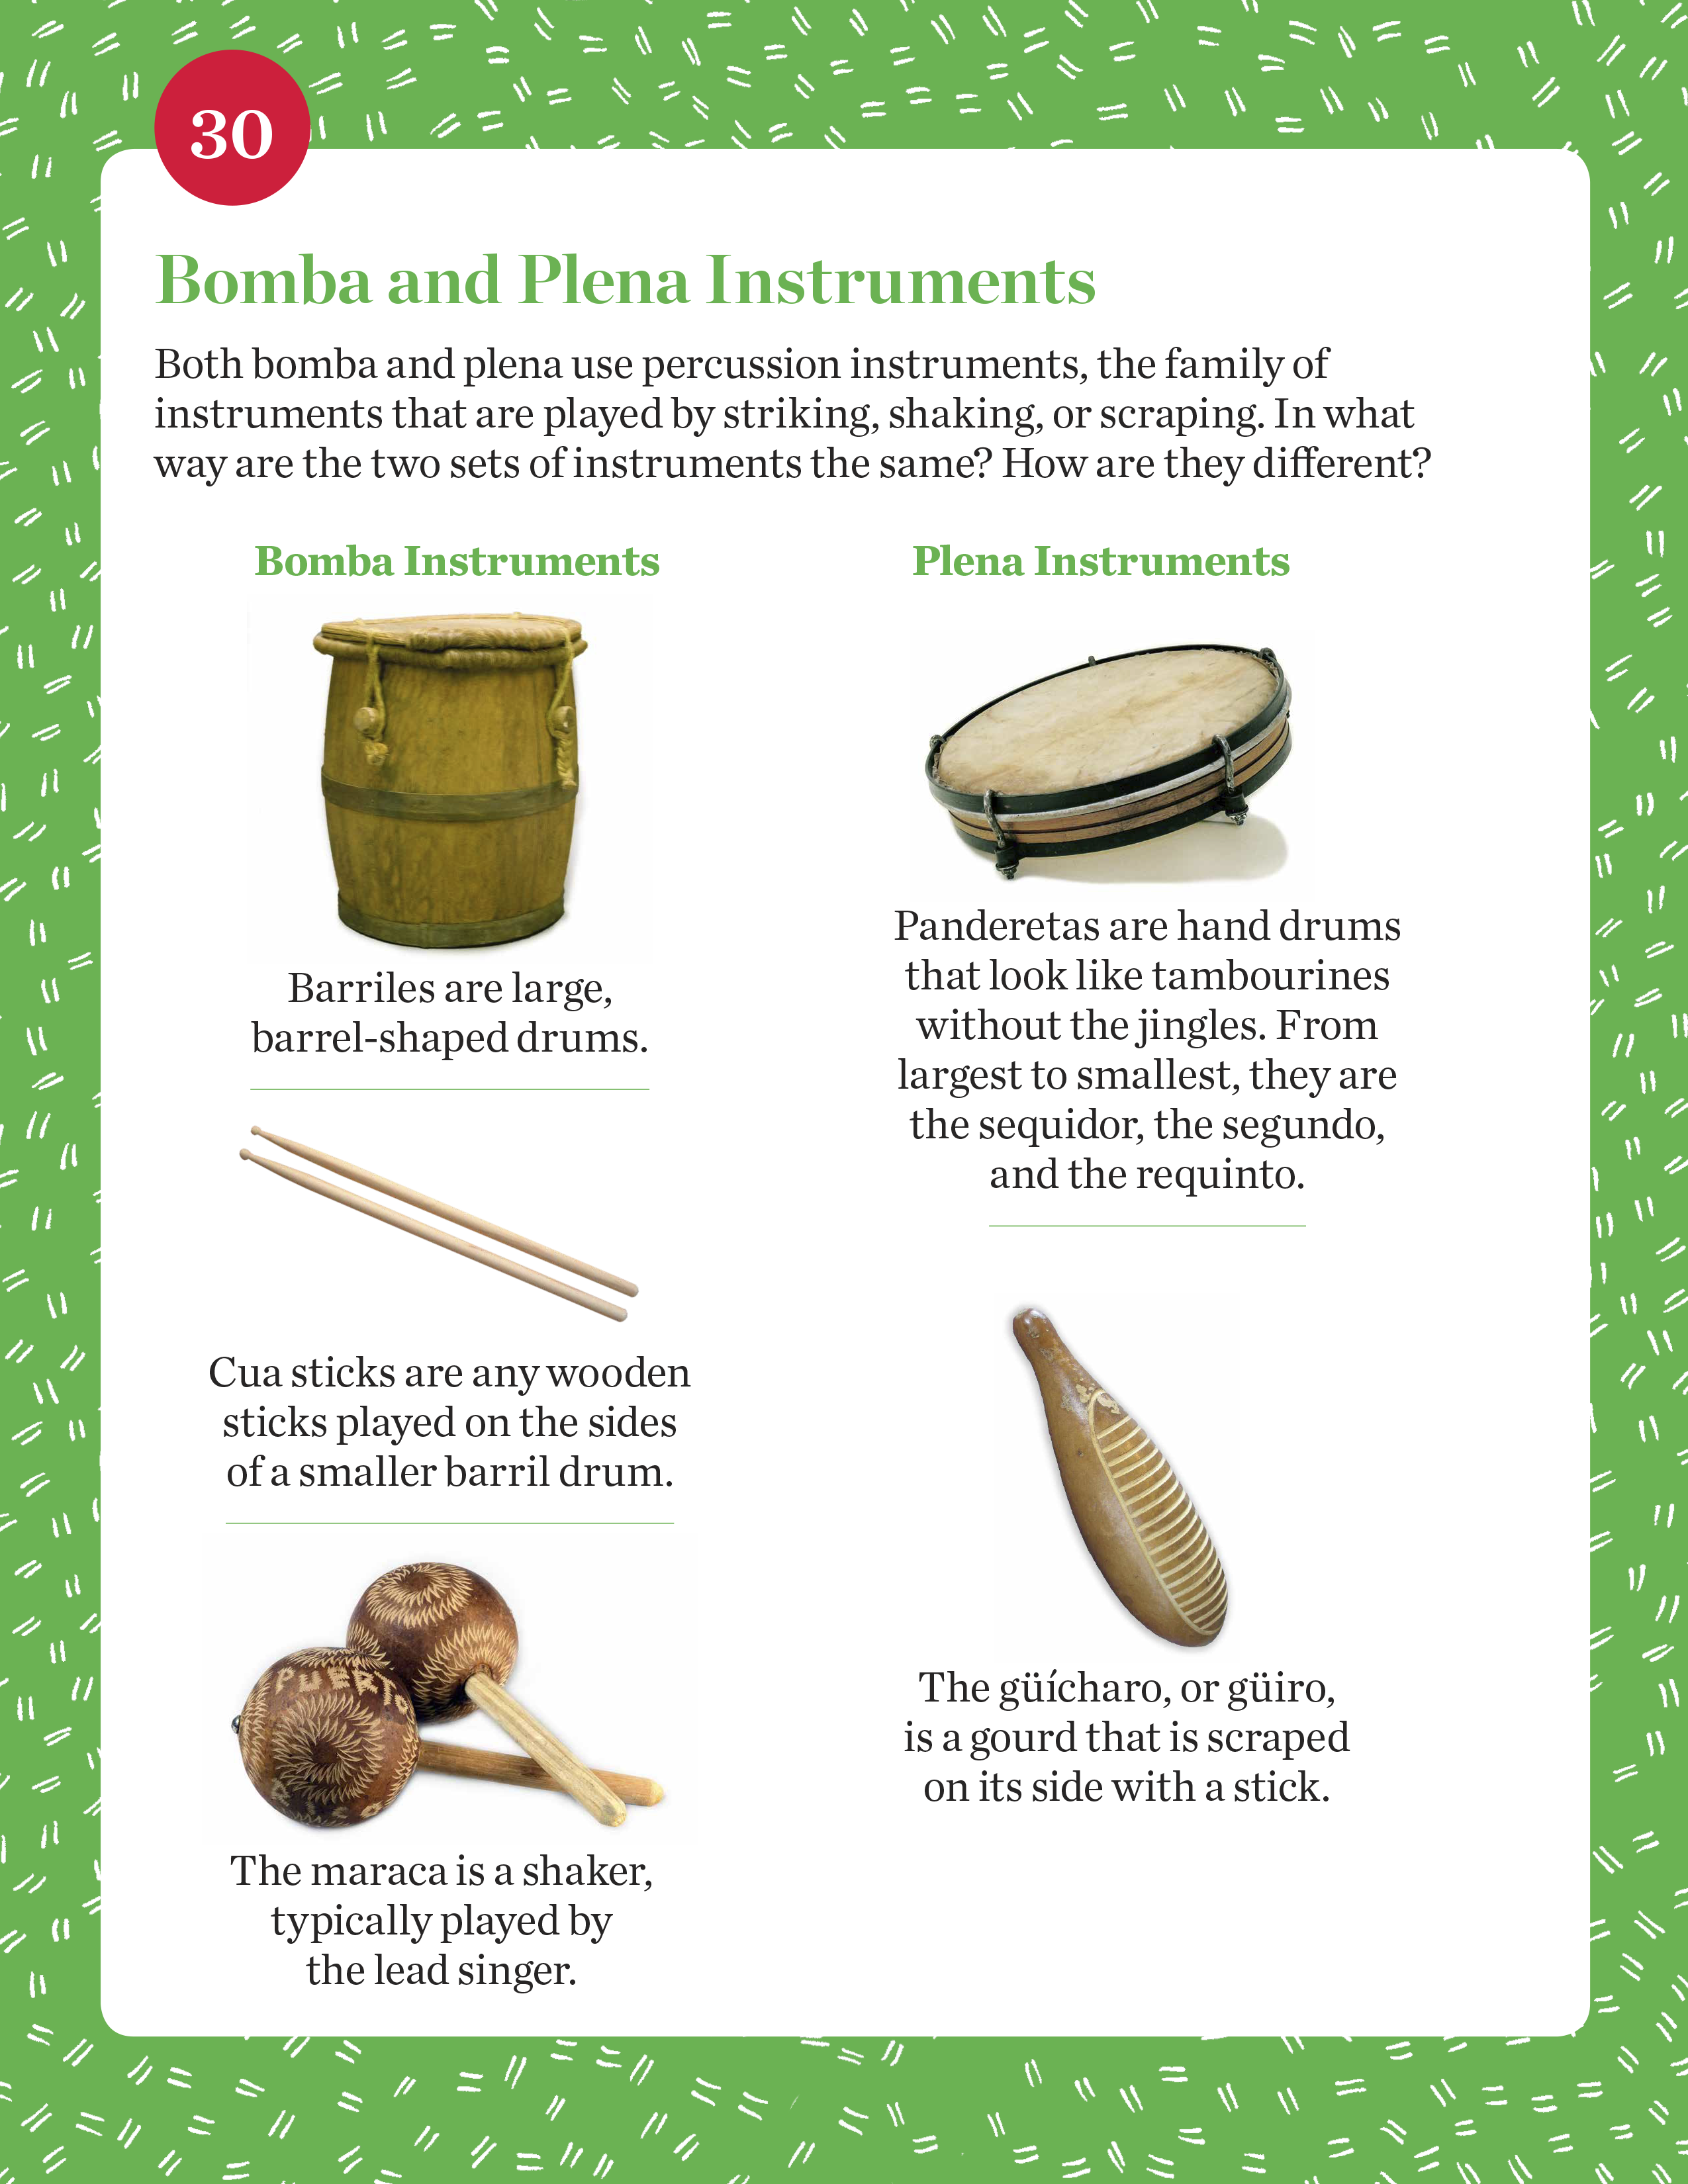 Bomba and Plena Instruments